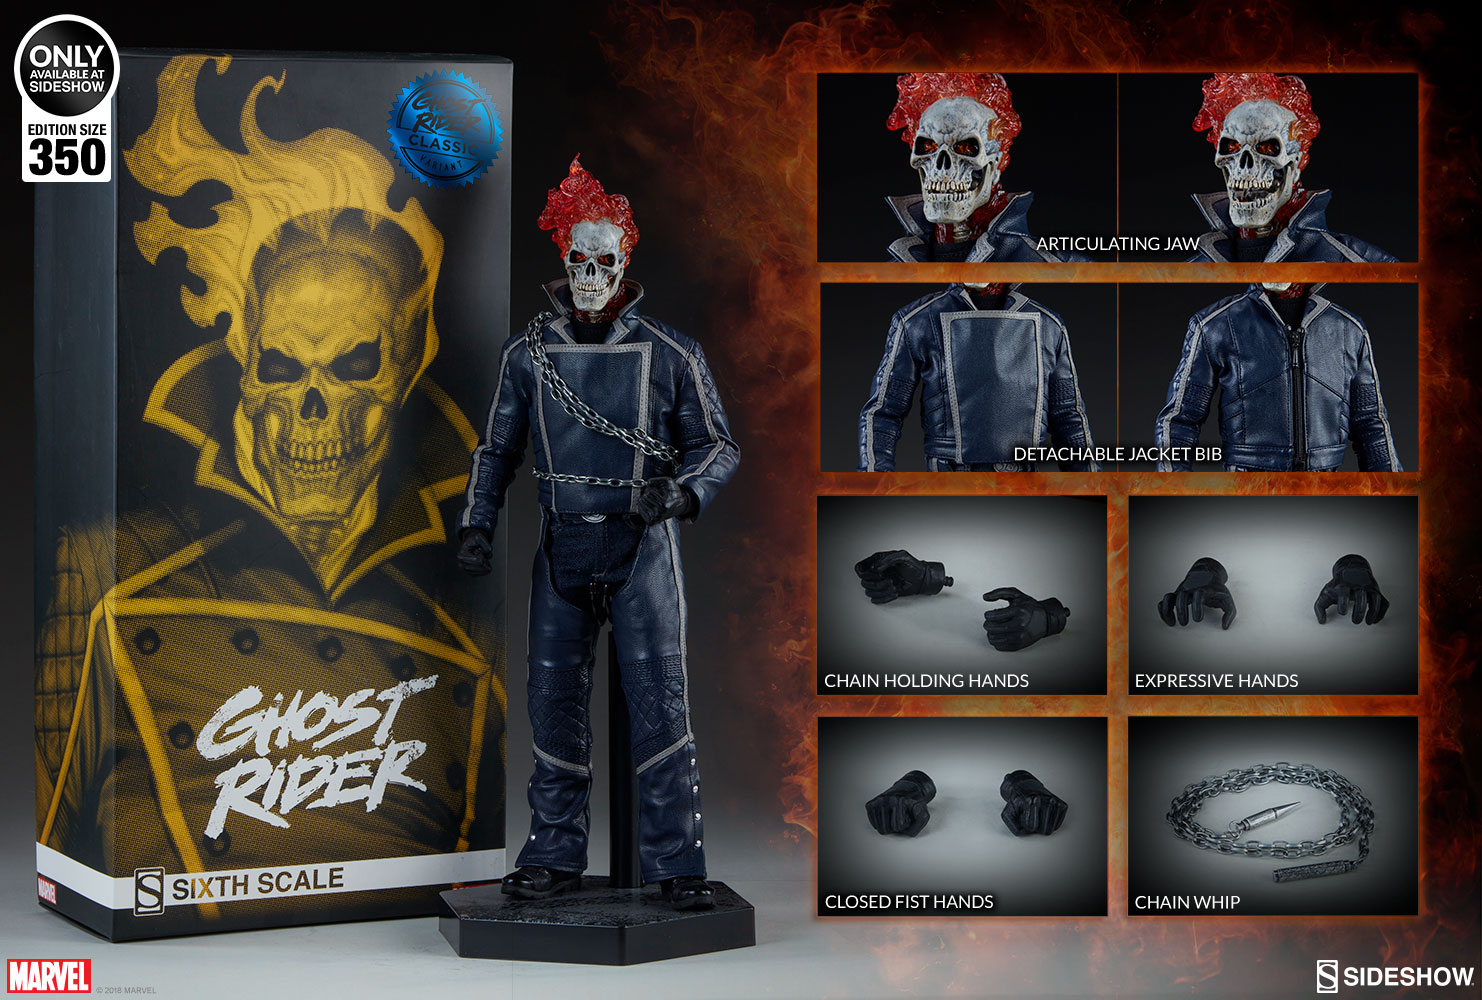 Sideshow Collectibles Limited Edition Ghost Rider Classic Sixth Scale Figure Pre-Orders